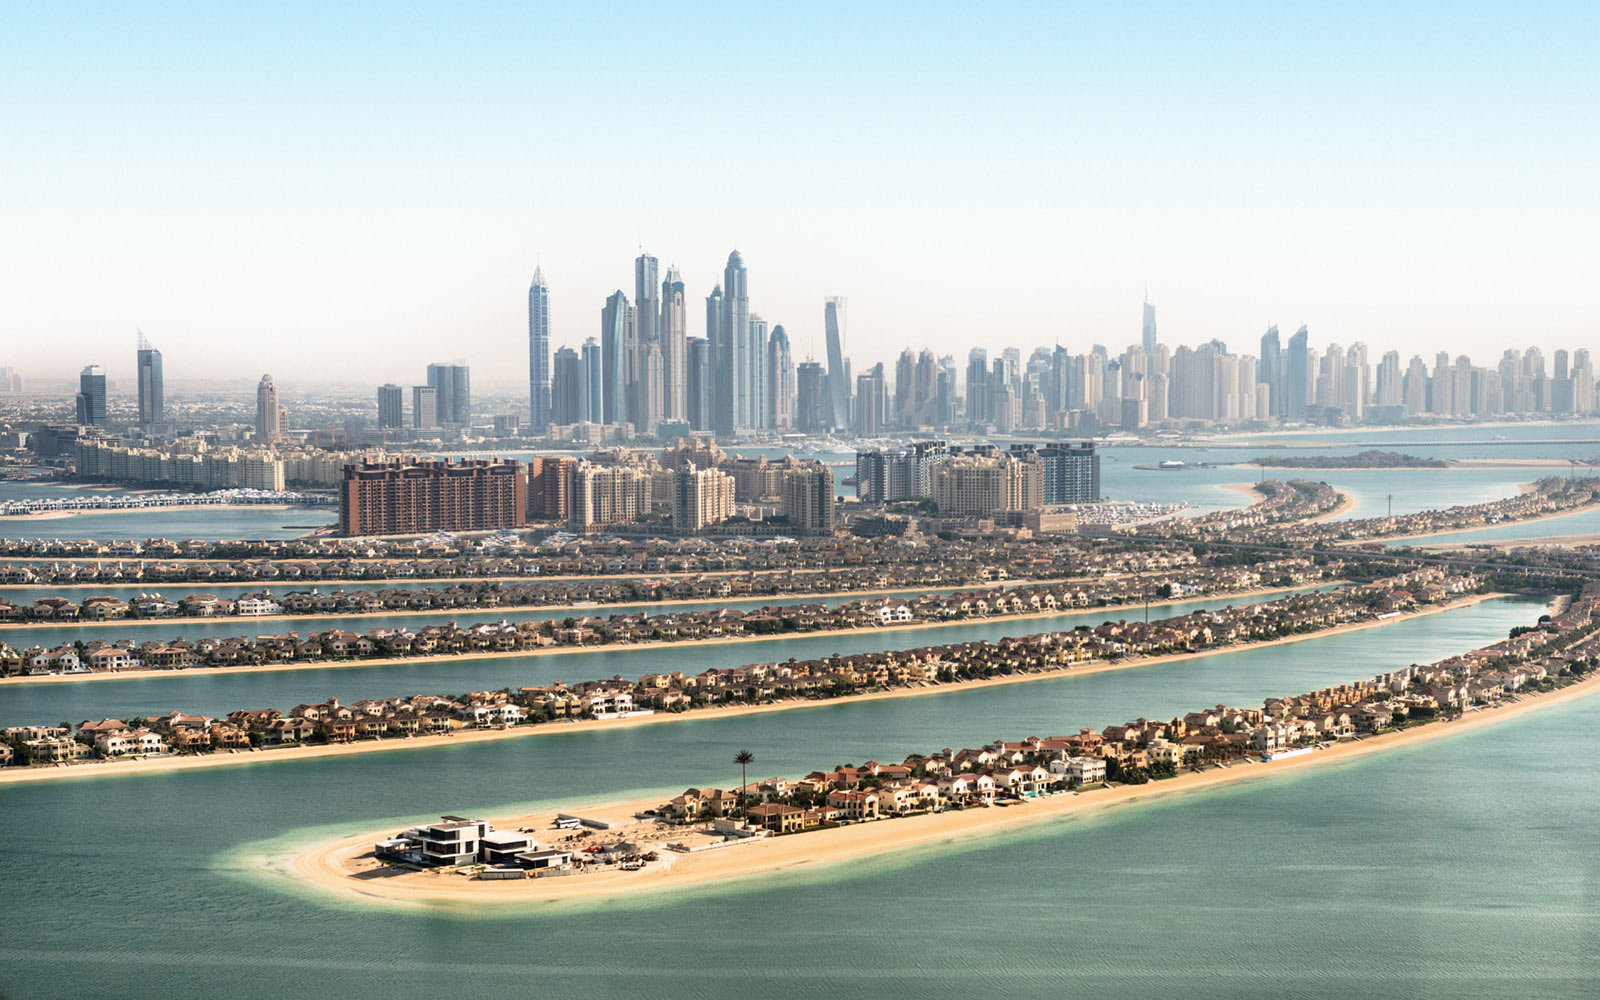 Dubai's Man-made Islands: Everything You Need to Know | Travel + Leisure